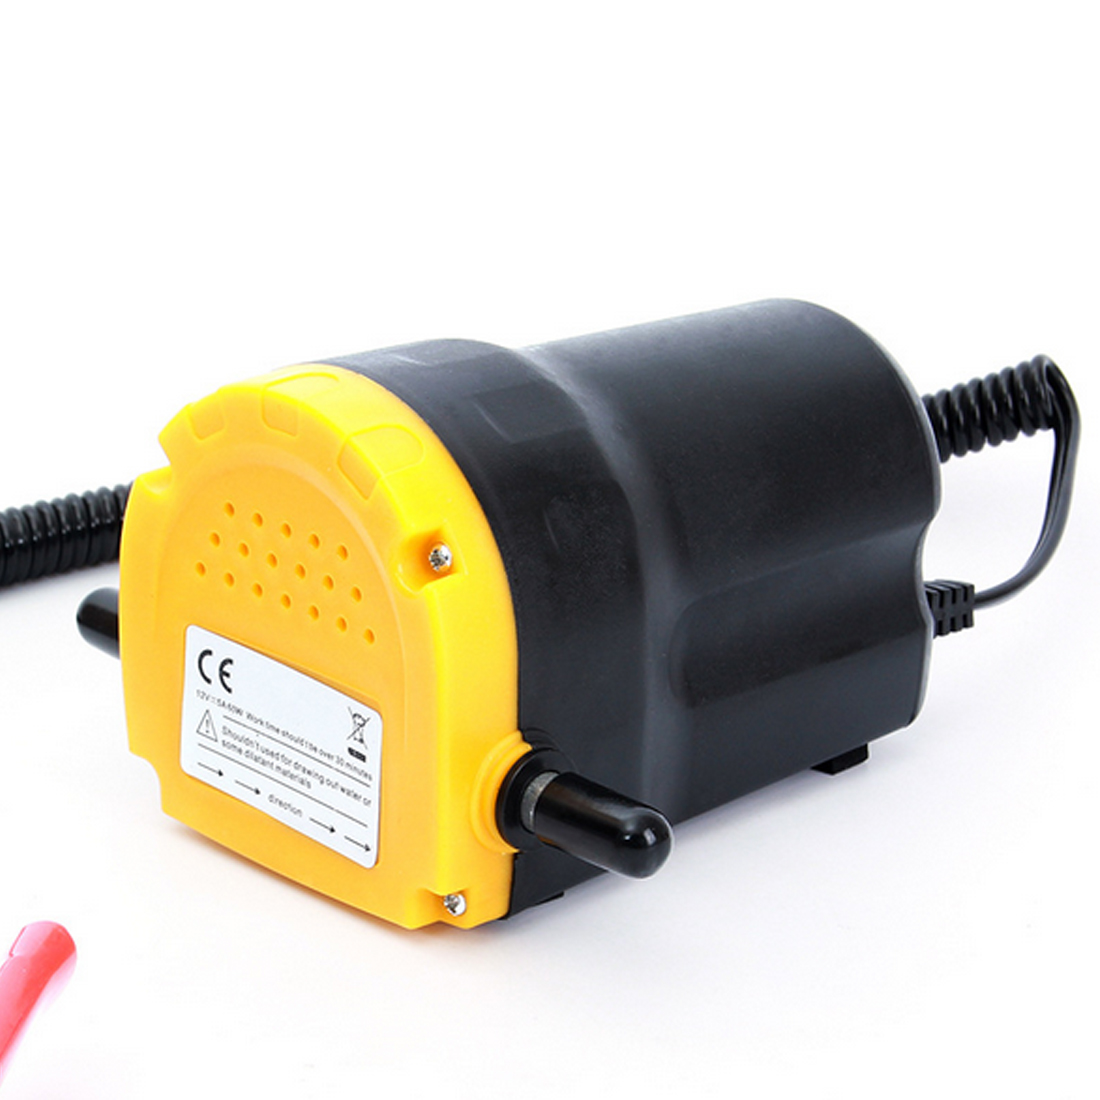 1pcs 12V Oil/Diesel Fluid Sump Extractor Scavenge Exchange Transfer Pump Car Boat Motorbike Oil Pump diy brand dollar price 12v oil for diesel fluid sump extractor transfer pump for electric motorbike car oil transfer pump